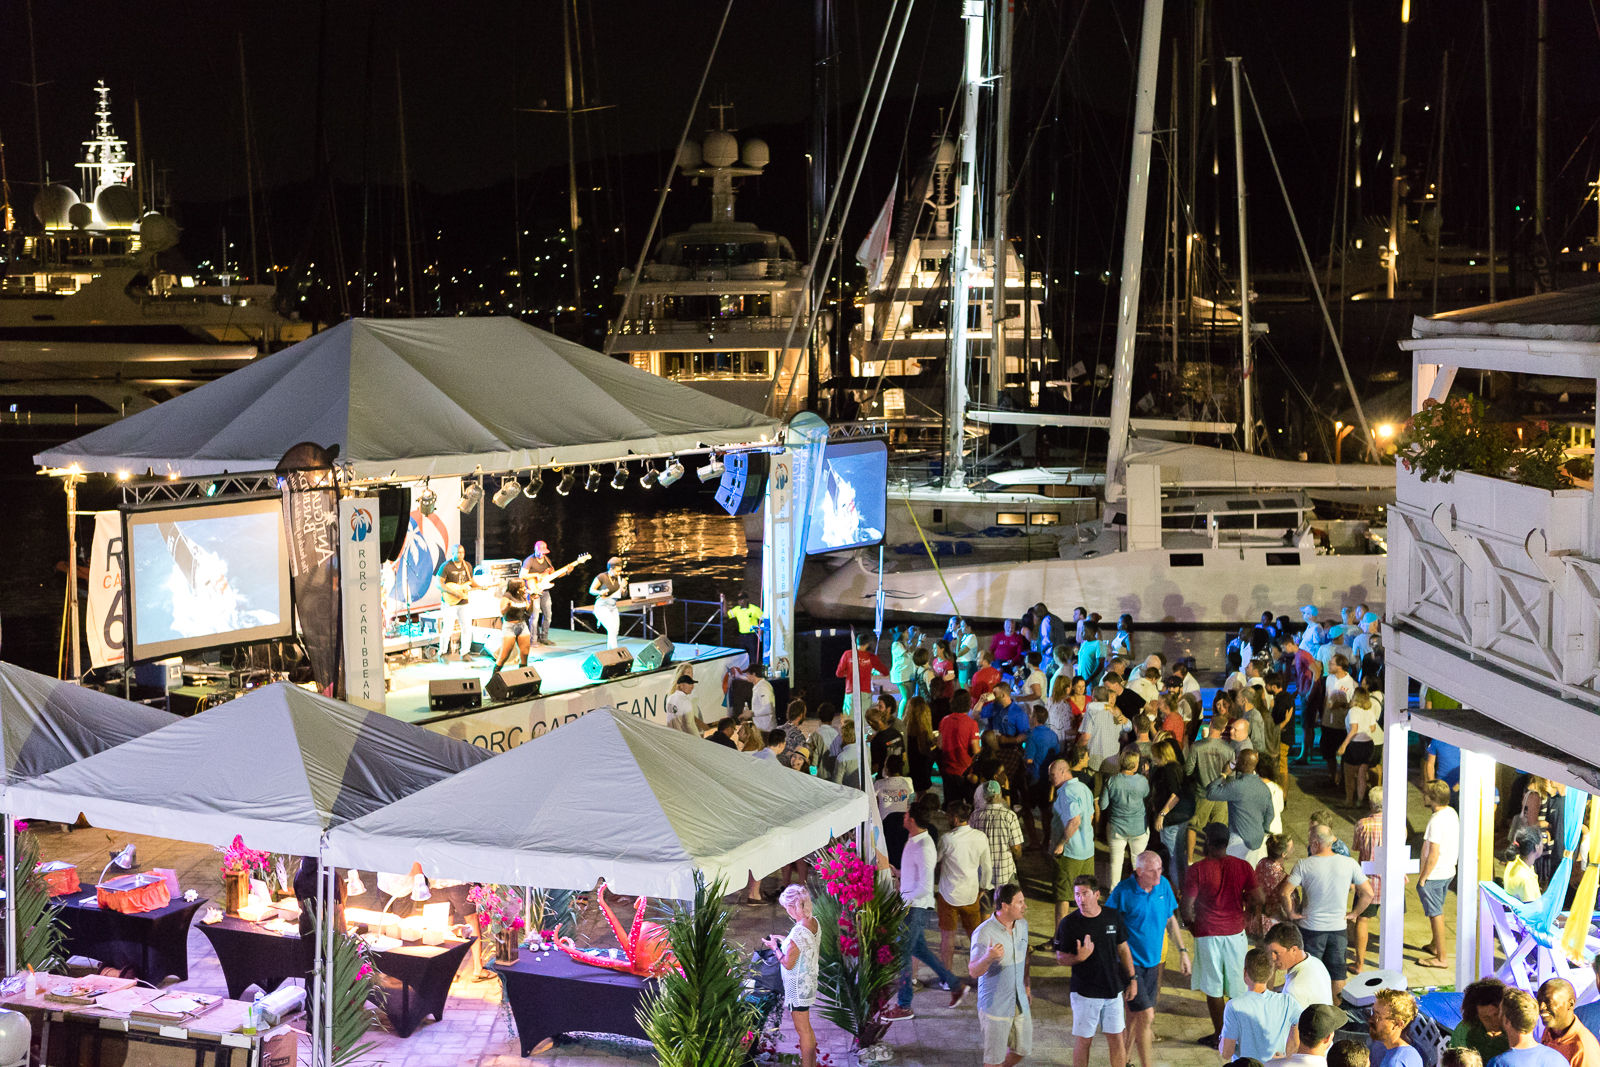 Guests enjoyed the RORC Caribbean 600 Welcome Party at Antigua Yacht Club © RORC/Arthur Daniel